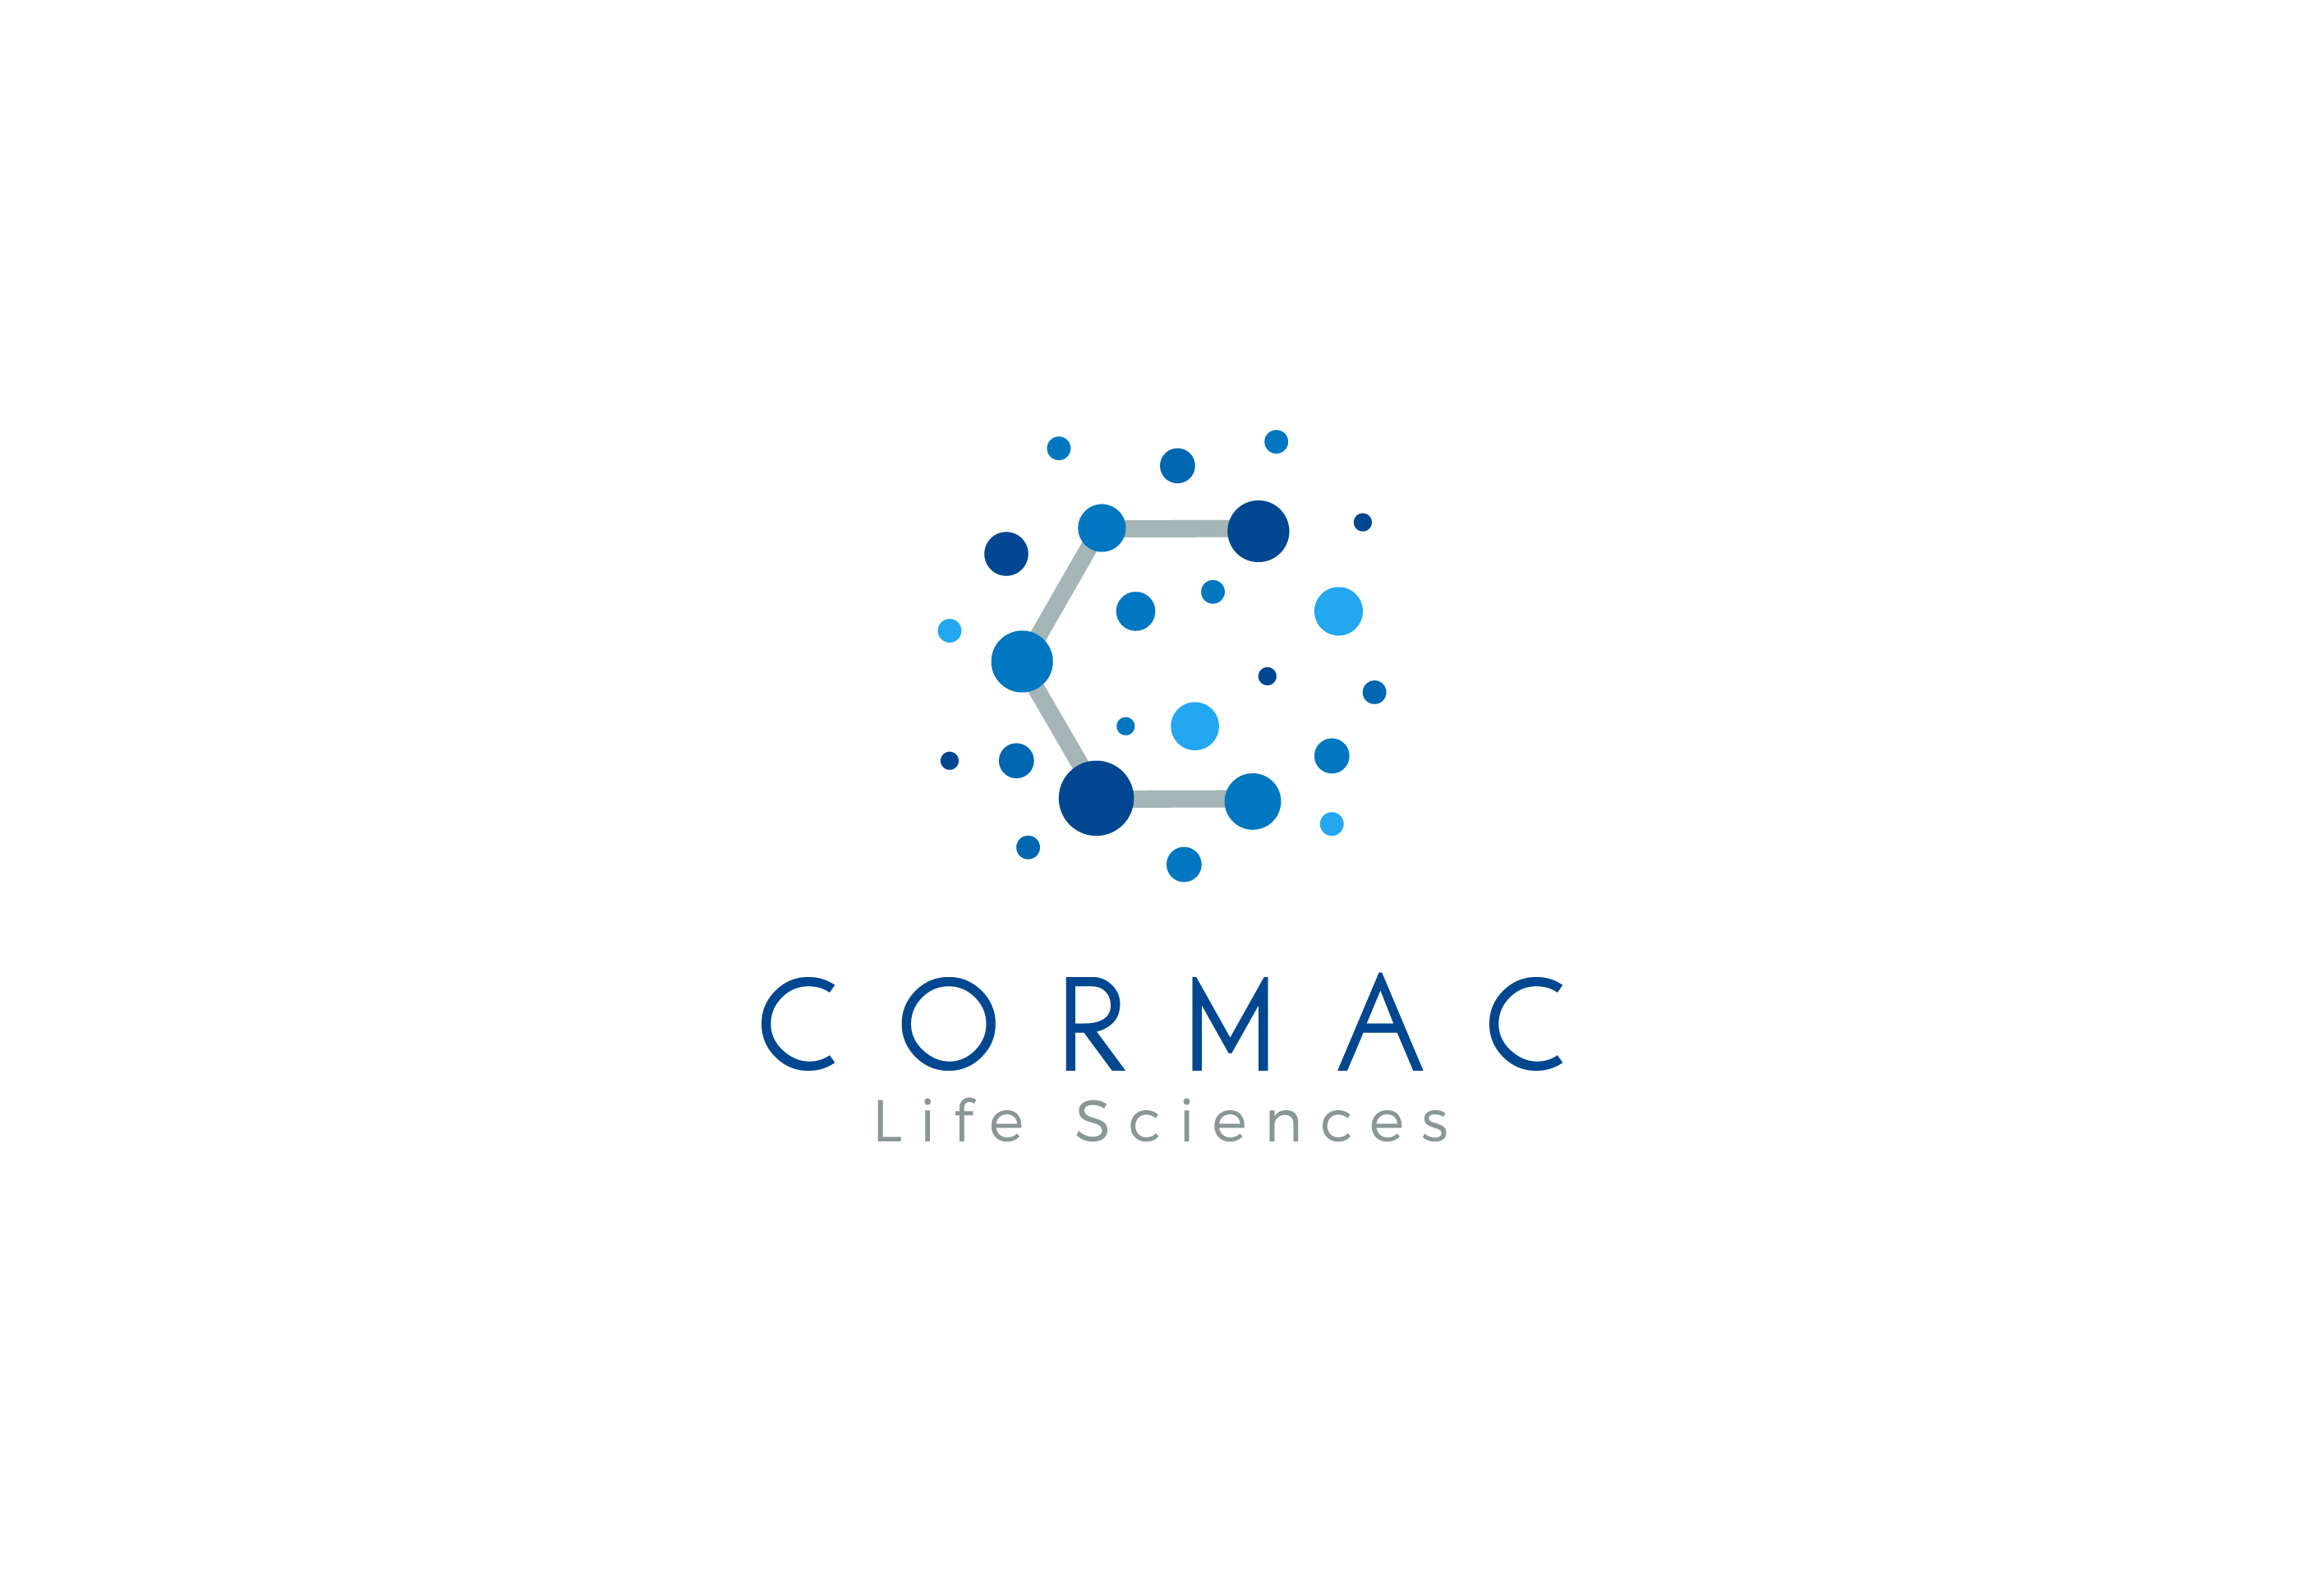 Cormac Life Sciences